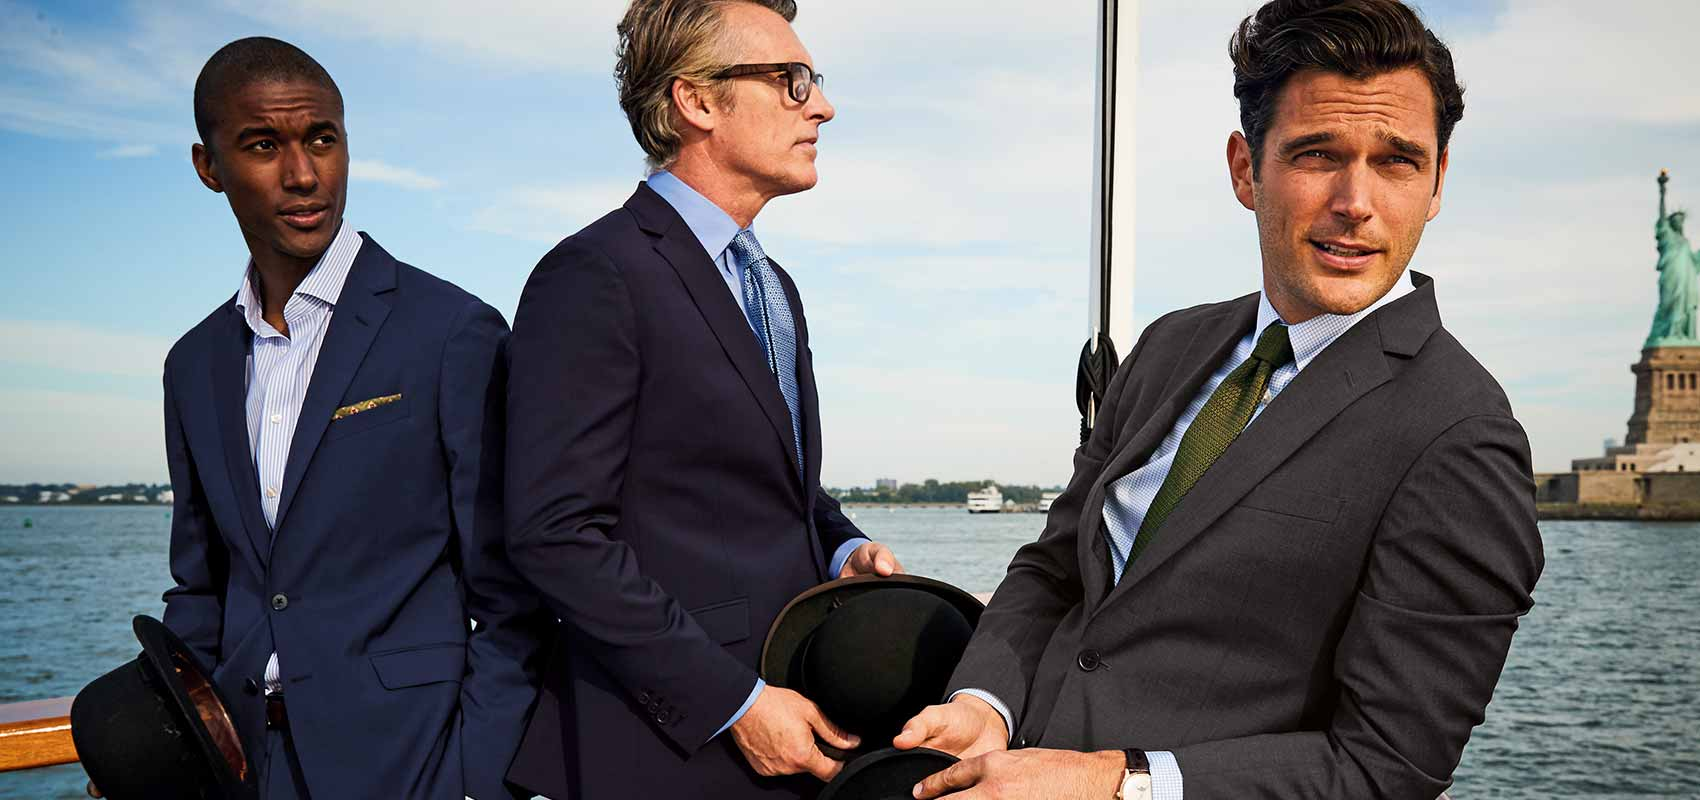 Charles Tyrwhitt extra slim fit suits